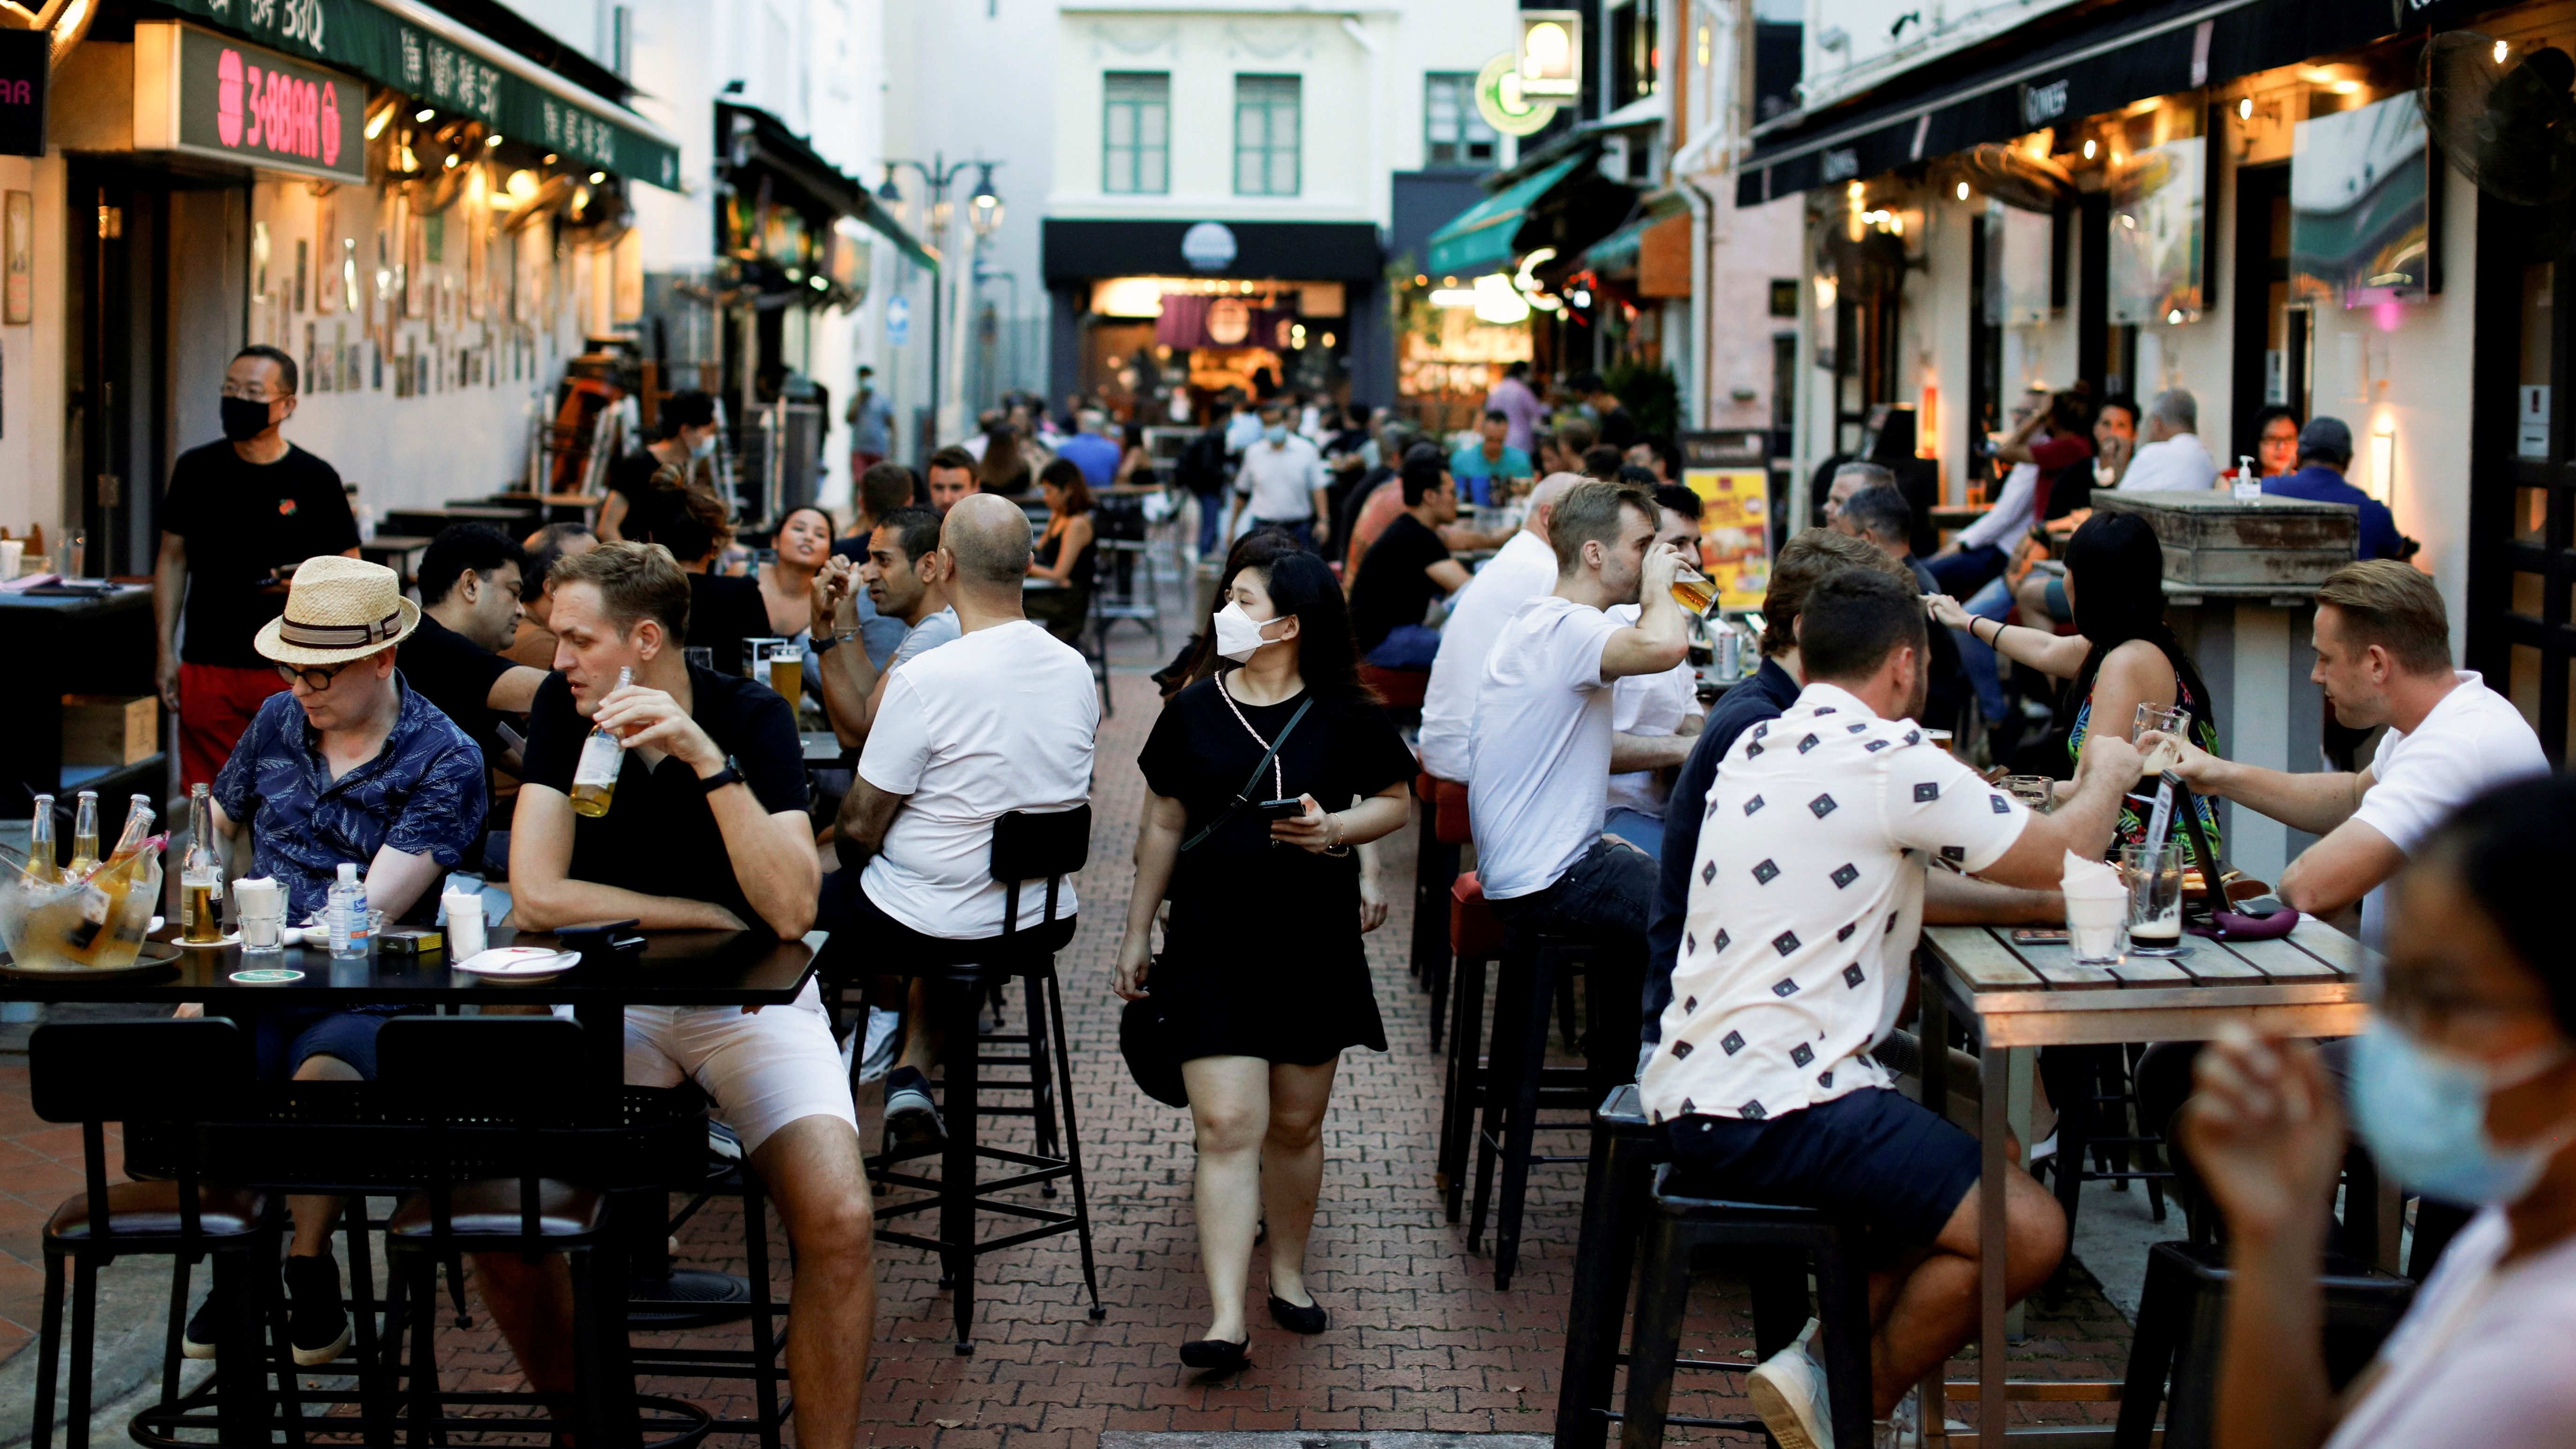 People dine at Boat Quay during the coronavirus disease (COVID-19) outbreak in Singapore